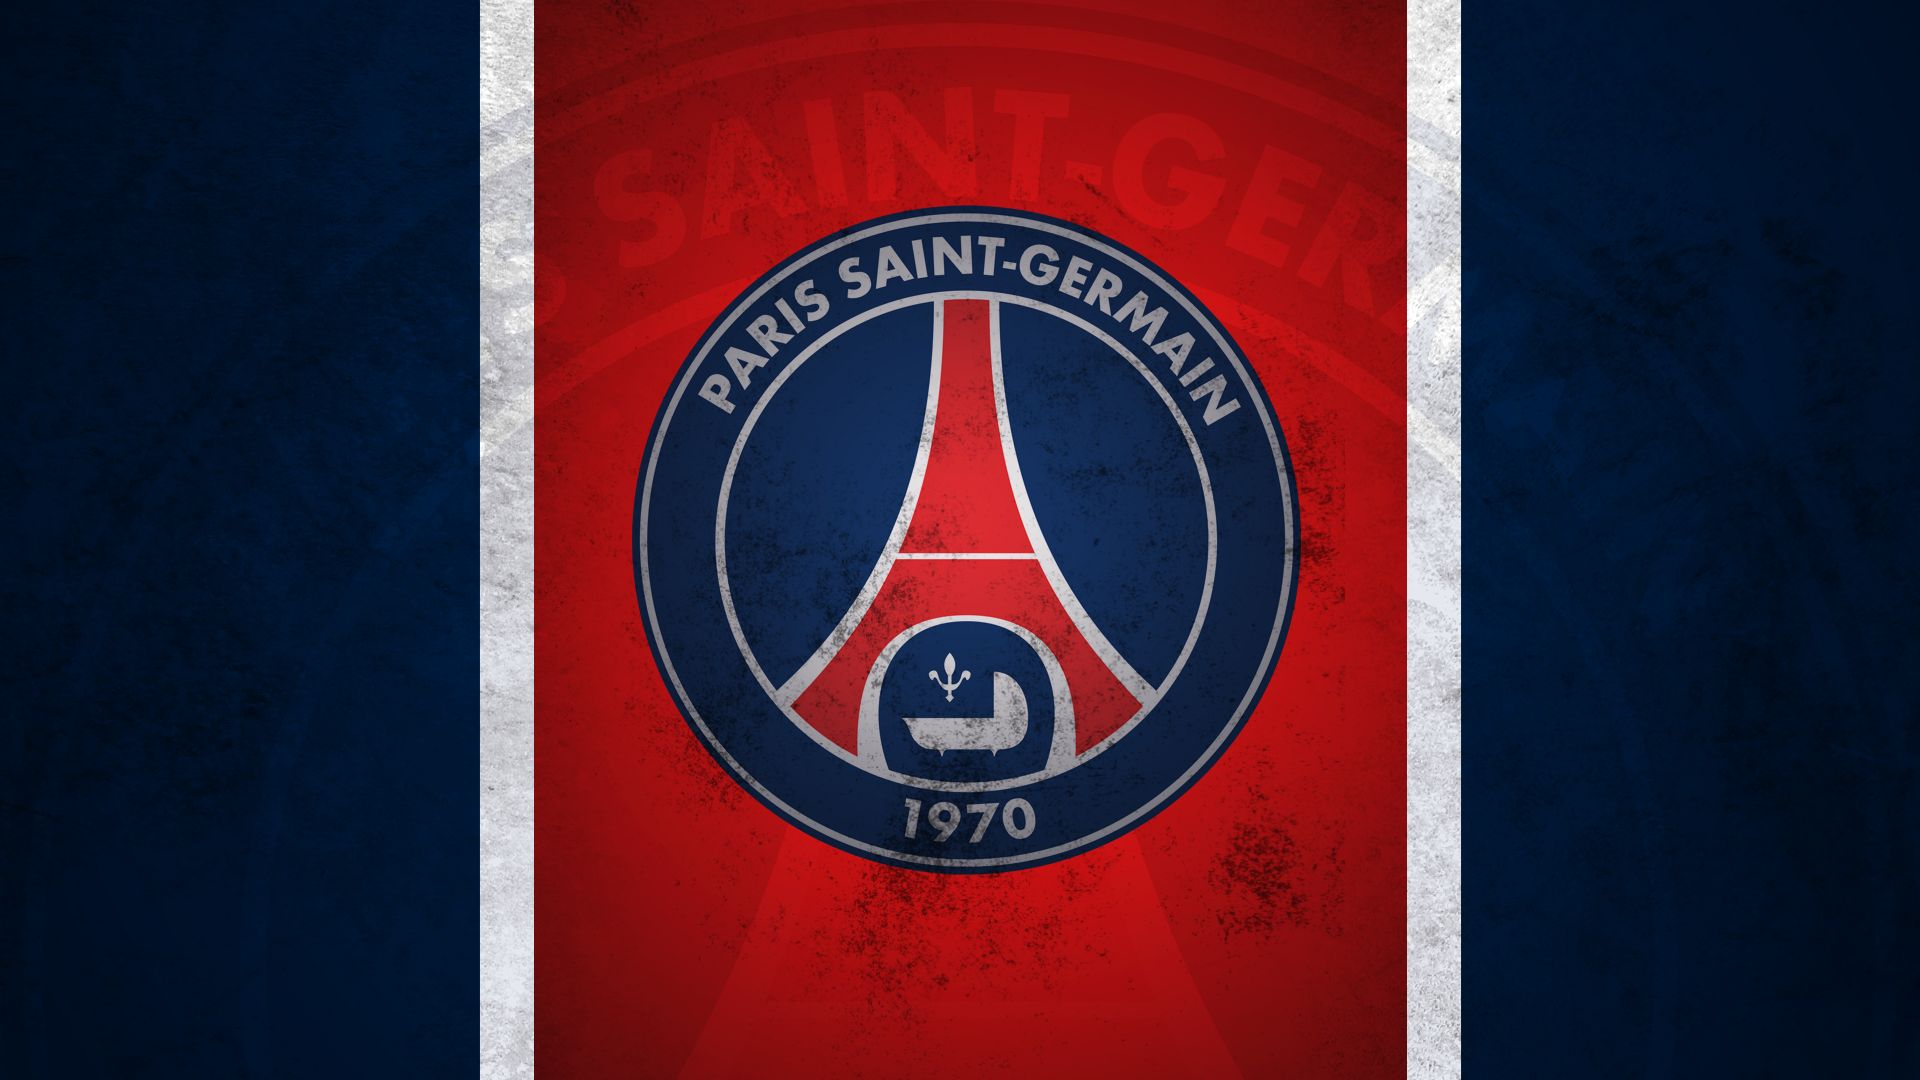 47 Paris Saint Germain Wallpaper On Wallpapersafari